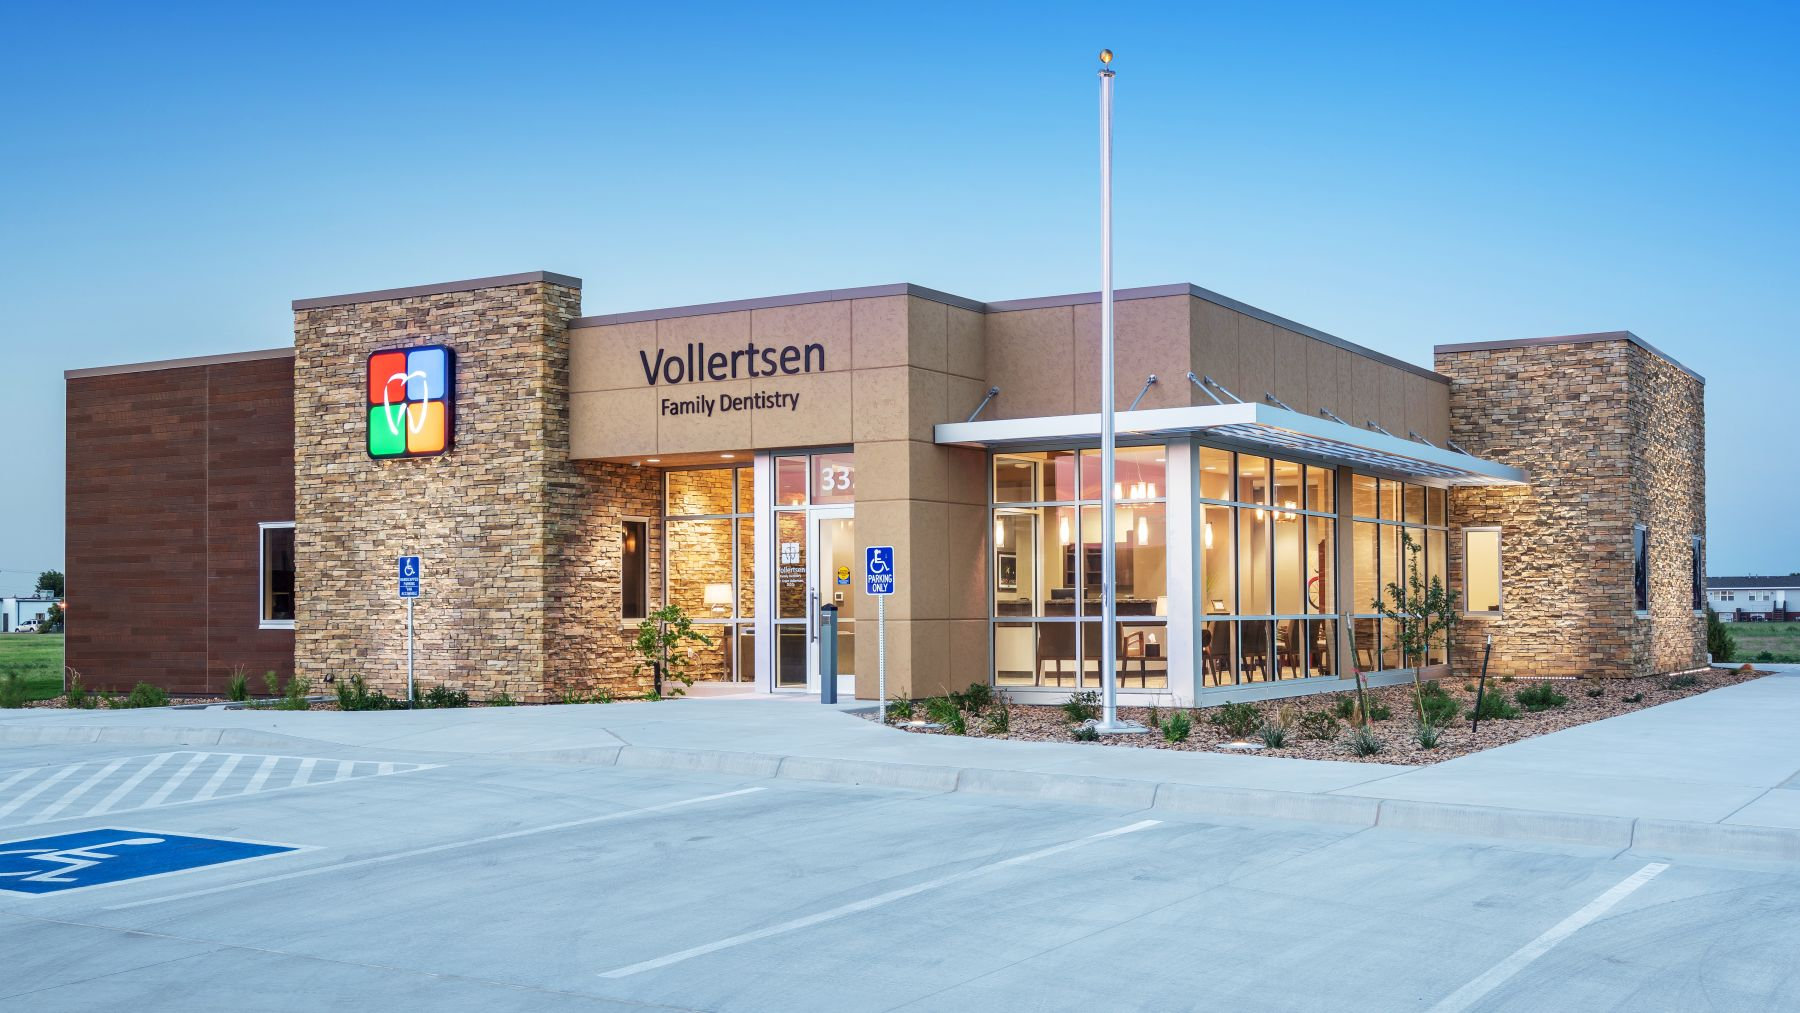 Vollertsen_Family_Dentistry_Exterior_2_Featured_Website_Image_1800